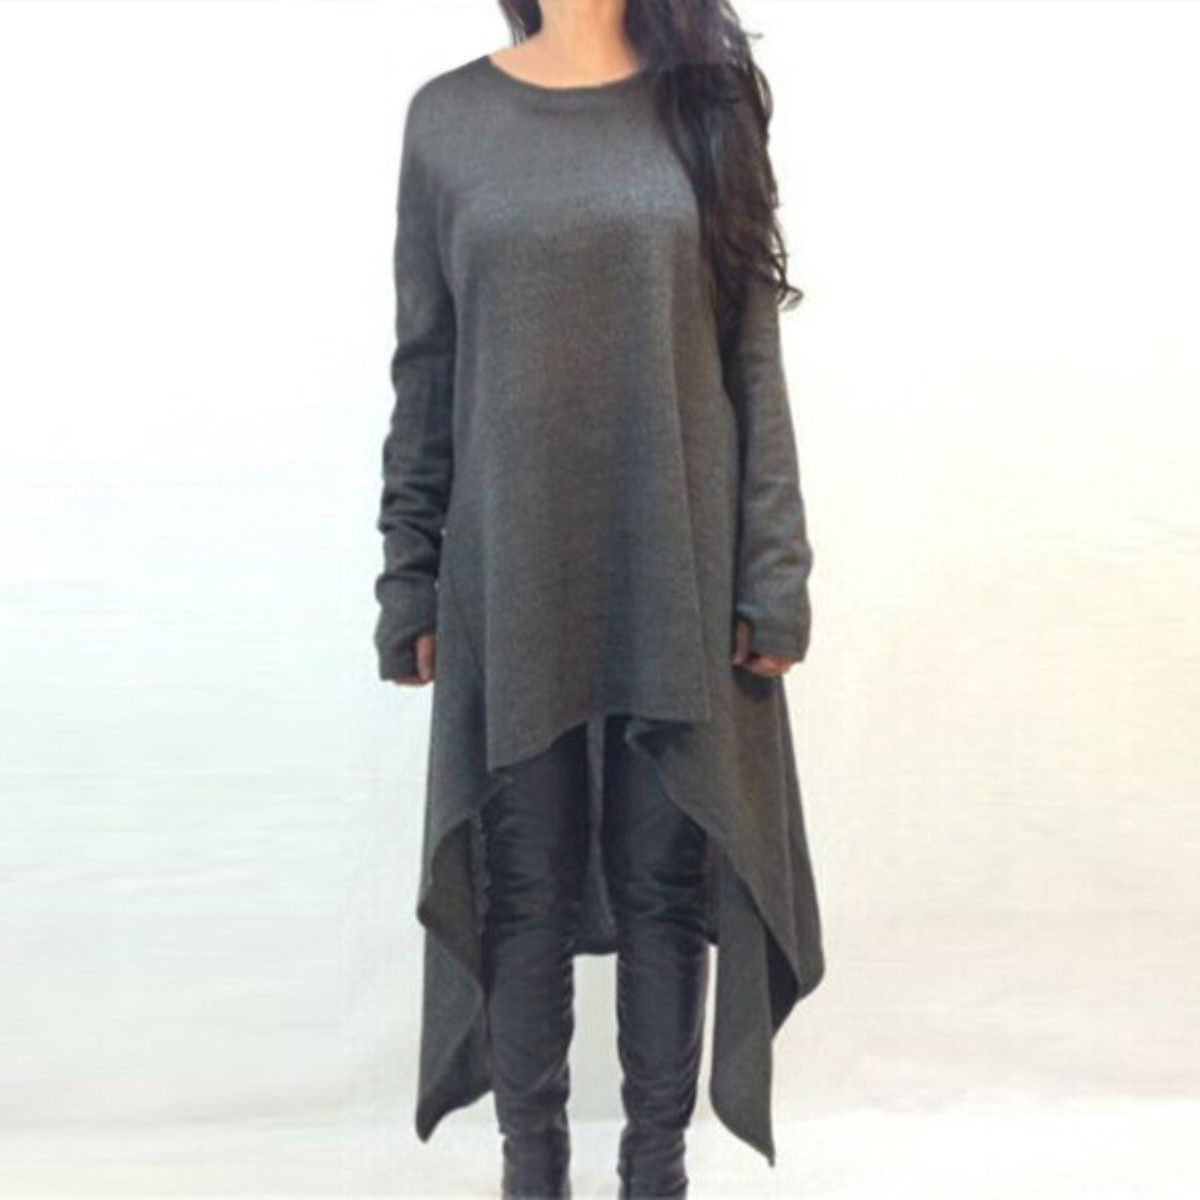 fashion autumn knitted dress women o neck full sleeve long maxi sweater dress loose casual solid. Black Bedroom Furniture Sets. Home Design Ideas